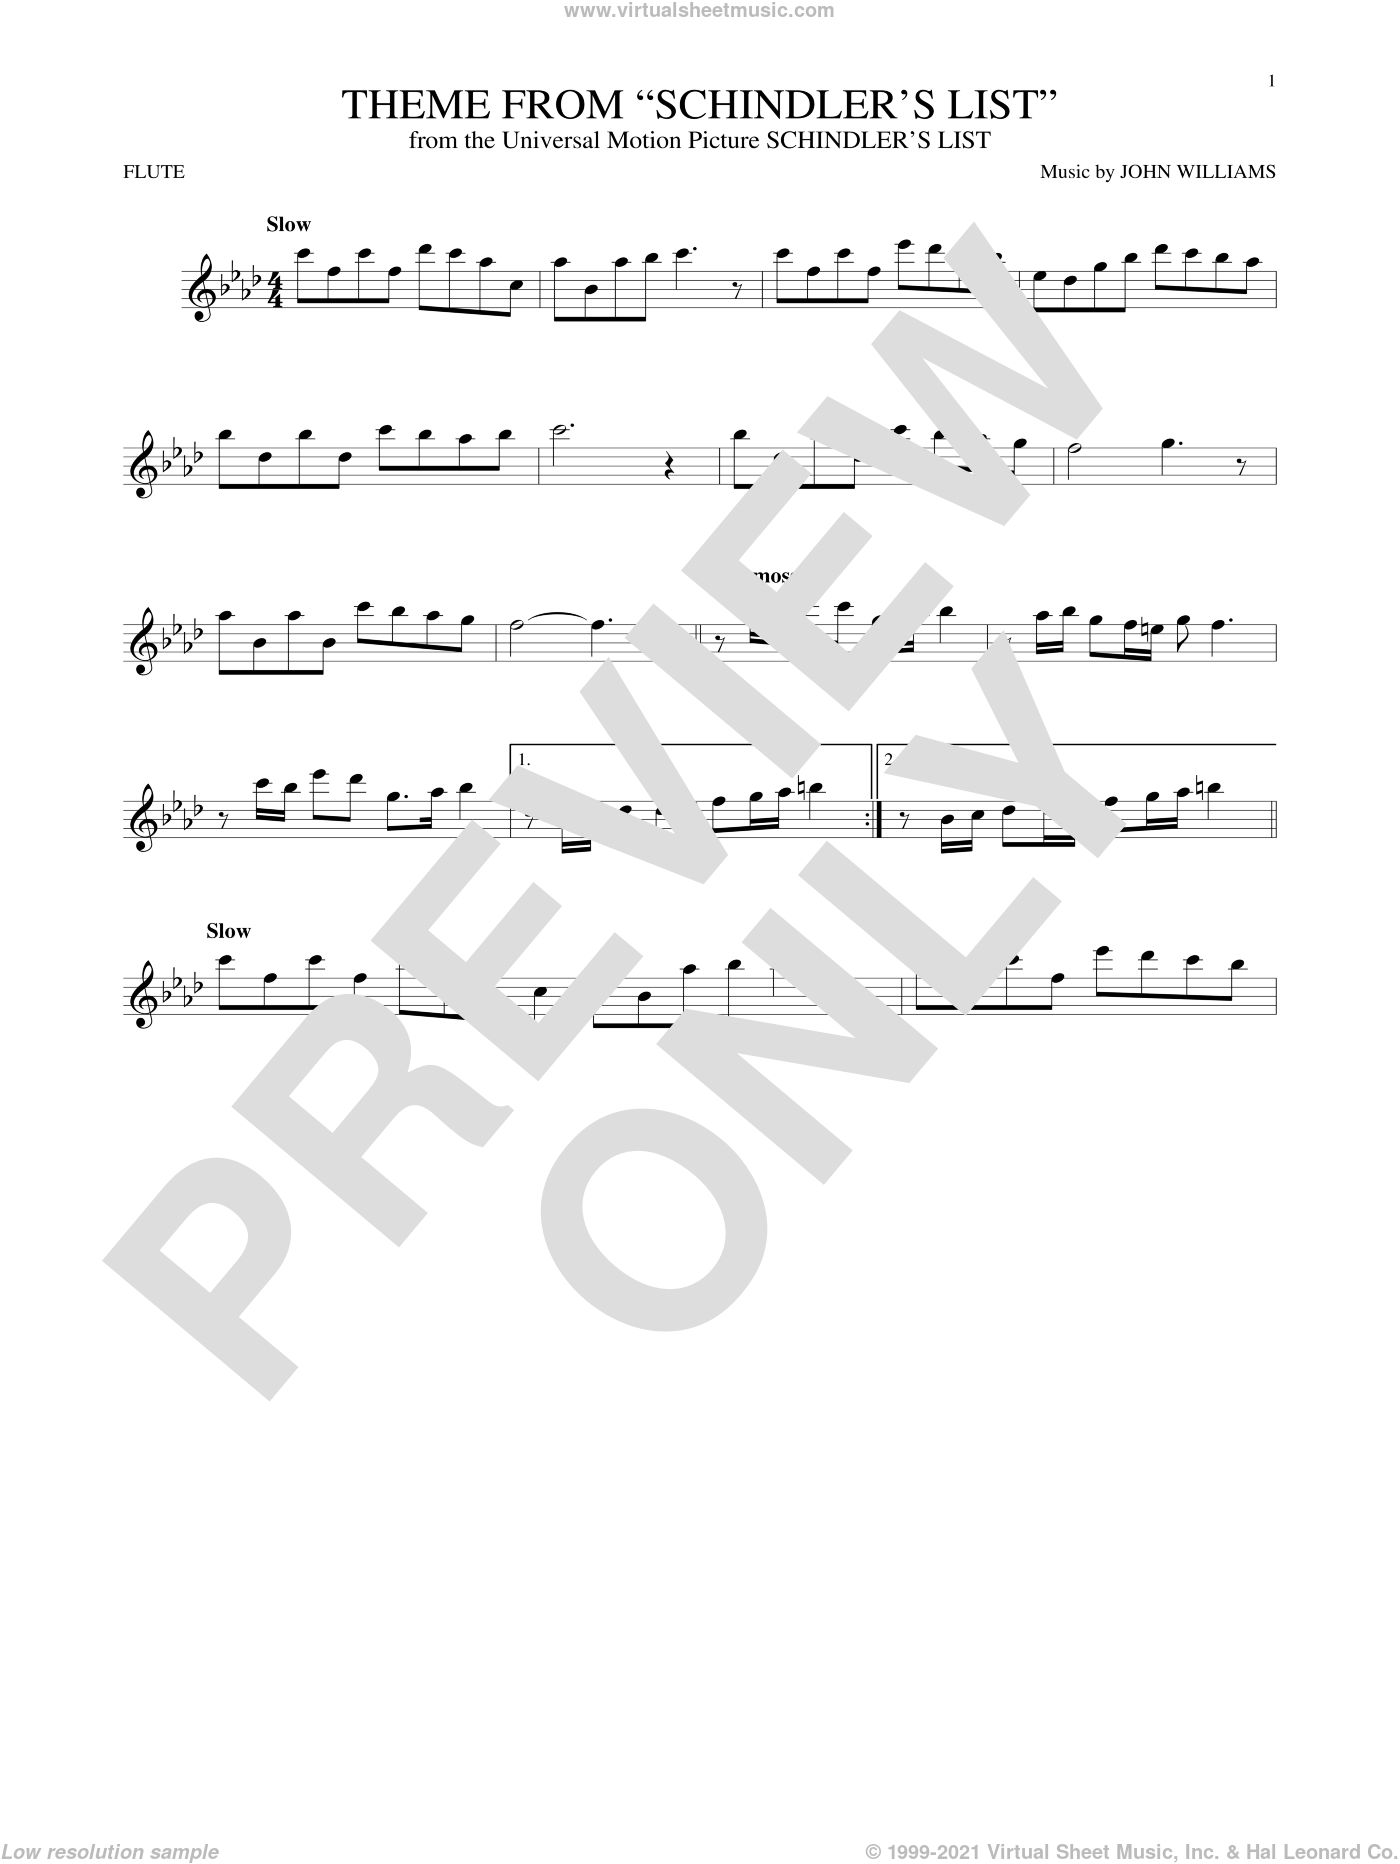 Theme From Schindler's List sheet music for flute solo by John Williams, intermediate skill level